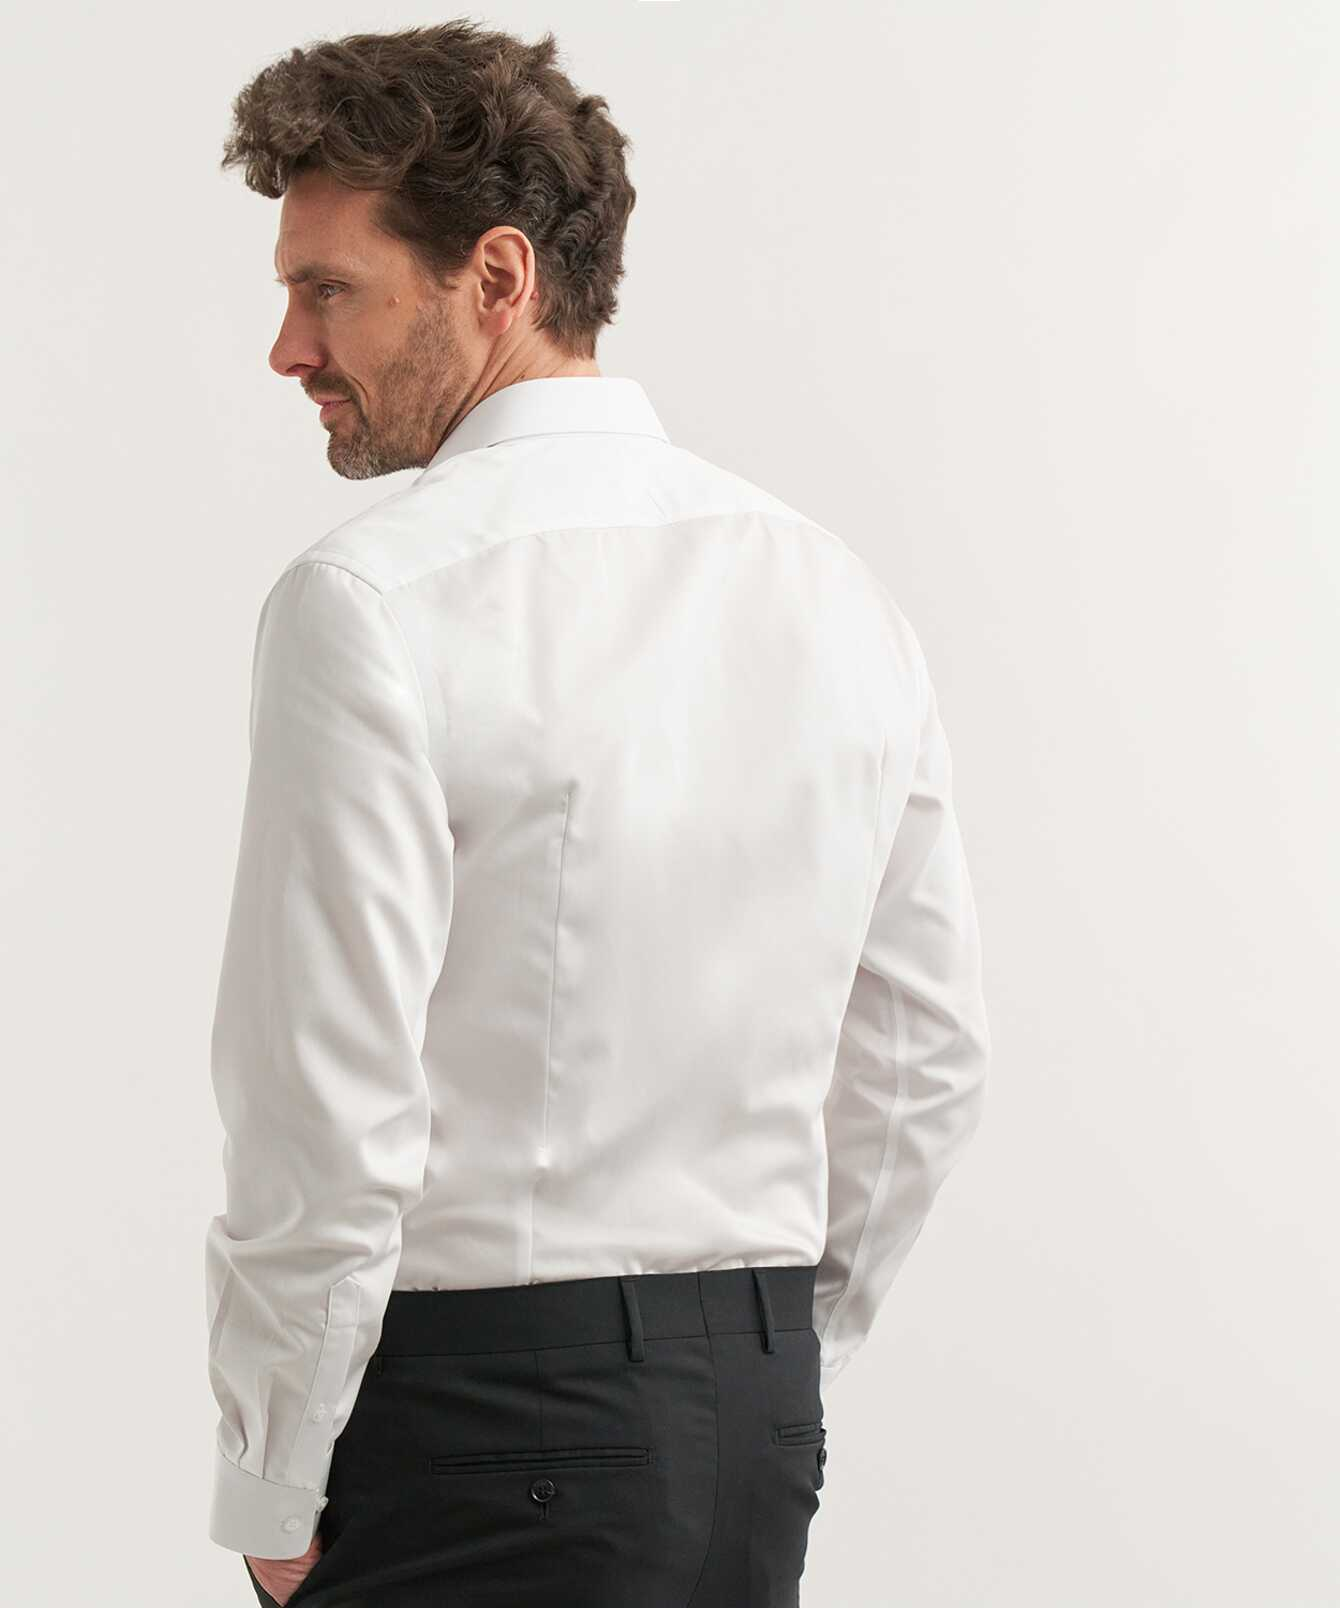 Skjorta Twill Strykfri Vit The Shirt Factory